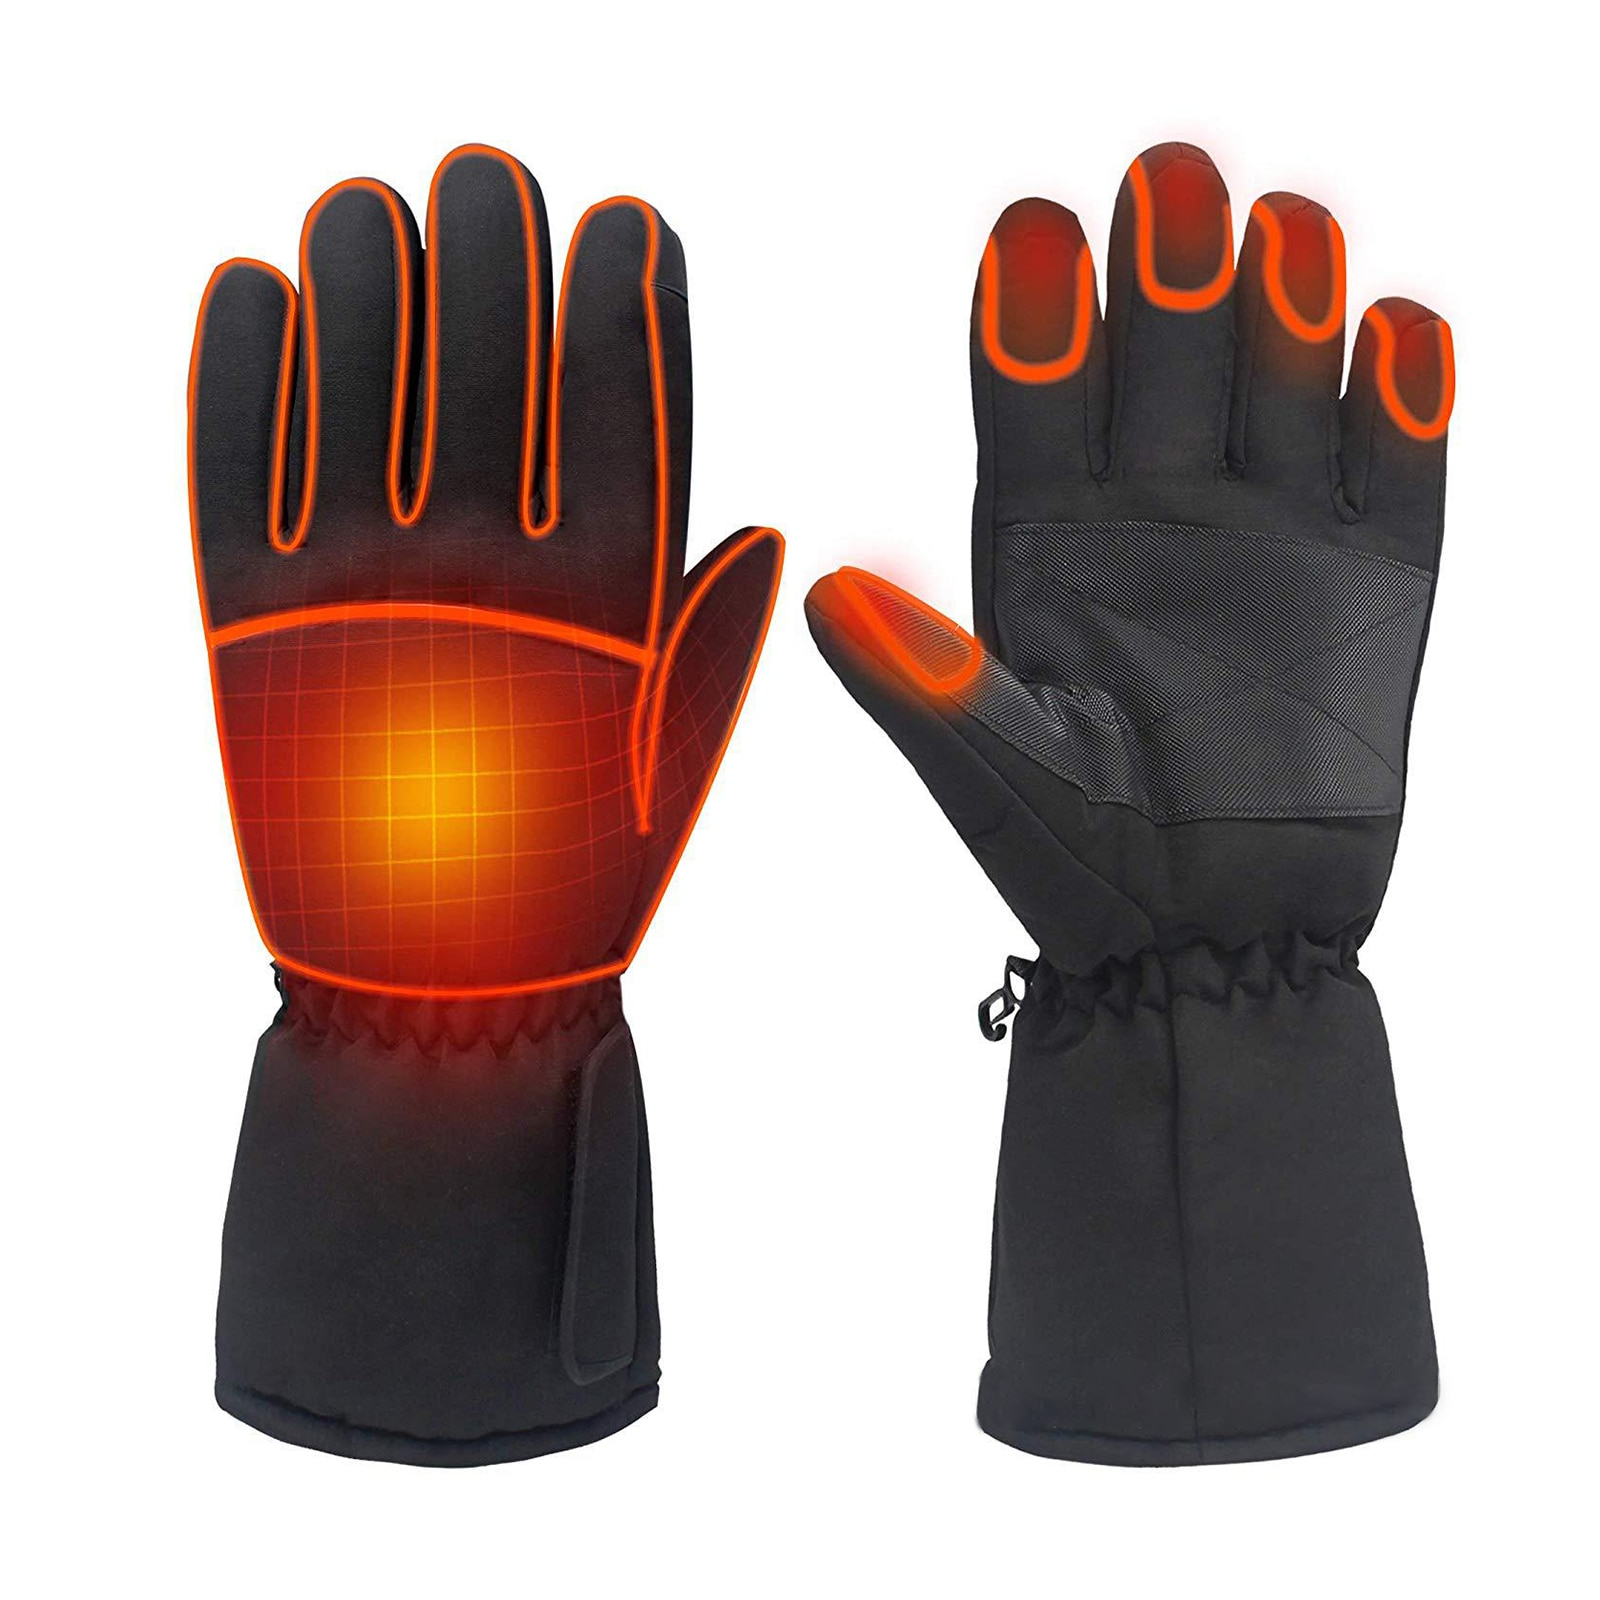 savior heating gloves thickened battery heating warm outdoor gloves motorcycle gloves shatter resistant gloves shell Motorcycle Heating Gloves Winter Touch Screen Winter Warm Skiing Gloves Waterproof Heating Thermal Gloves For Snowmobile